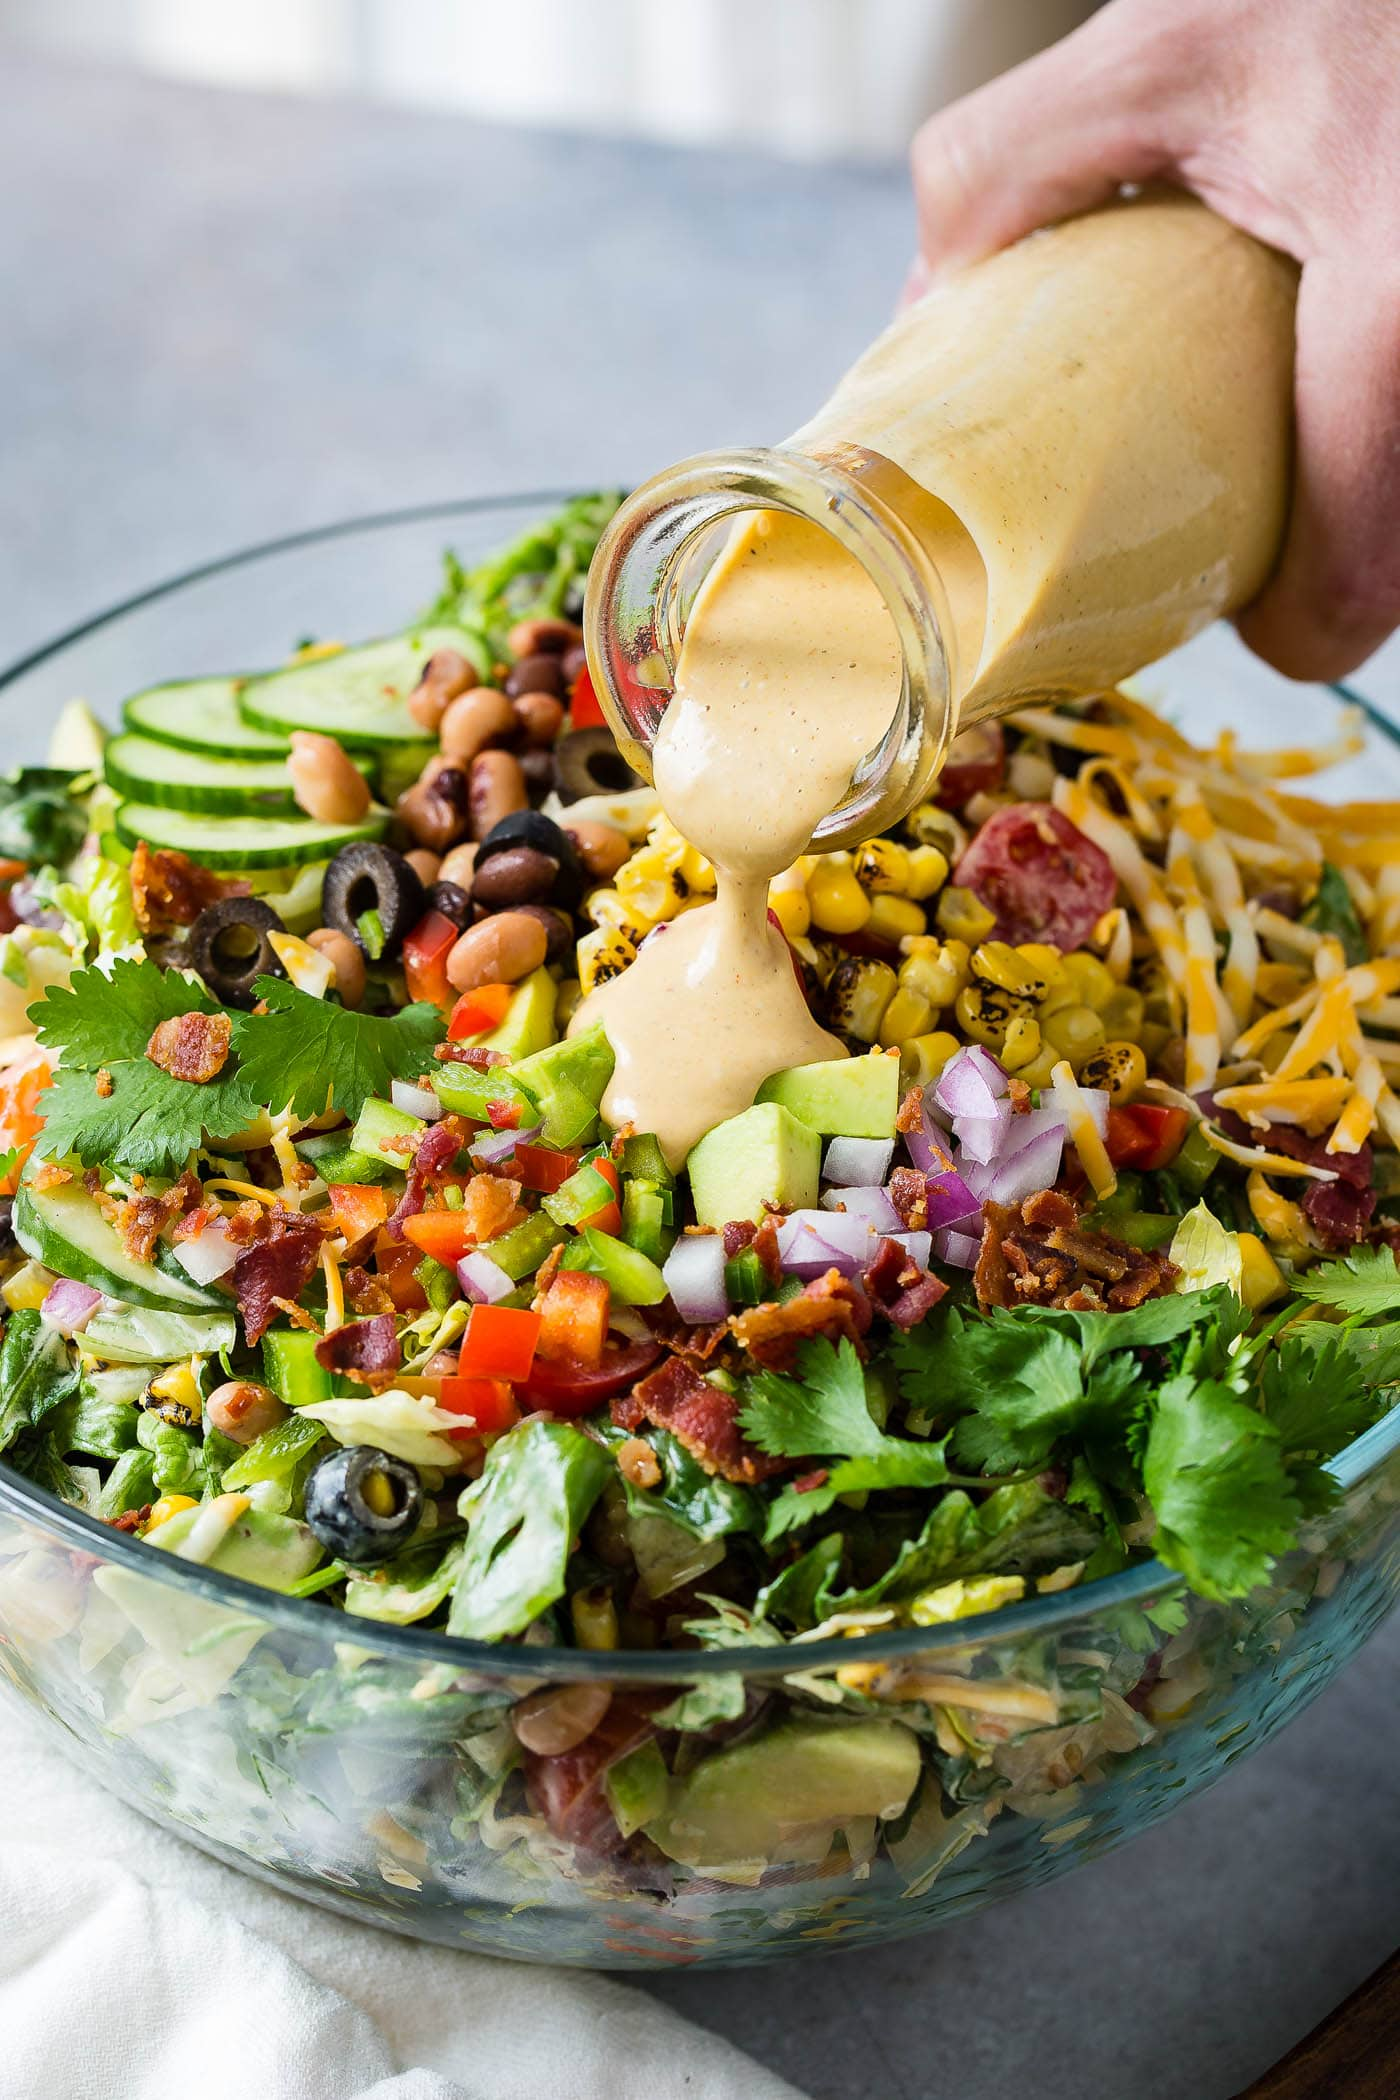 Cowboy salad in a serving bowl. A special dressing is being poured over the chopped onions, tomatoes, bacon, avocados, beans and lettuce.